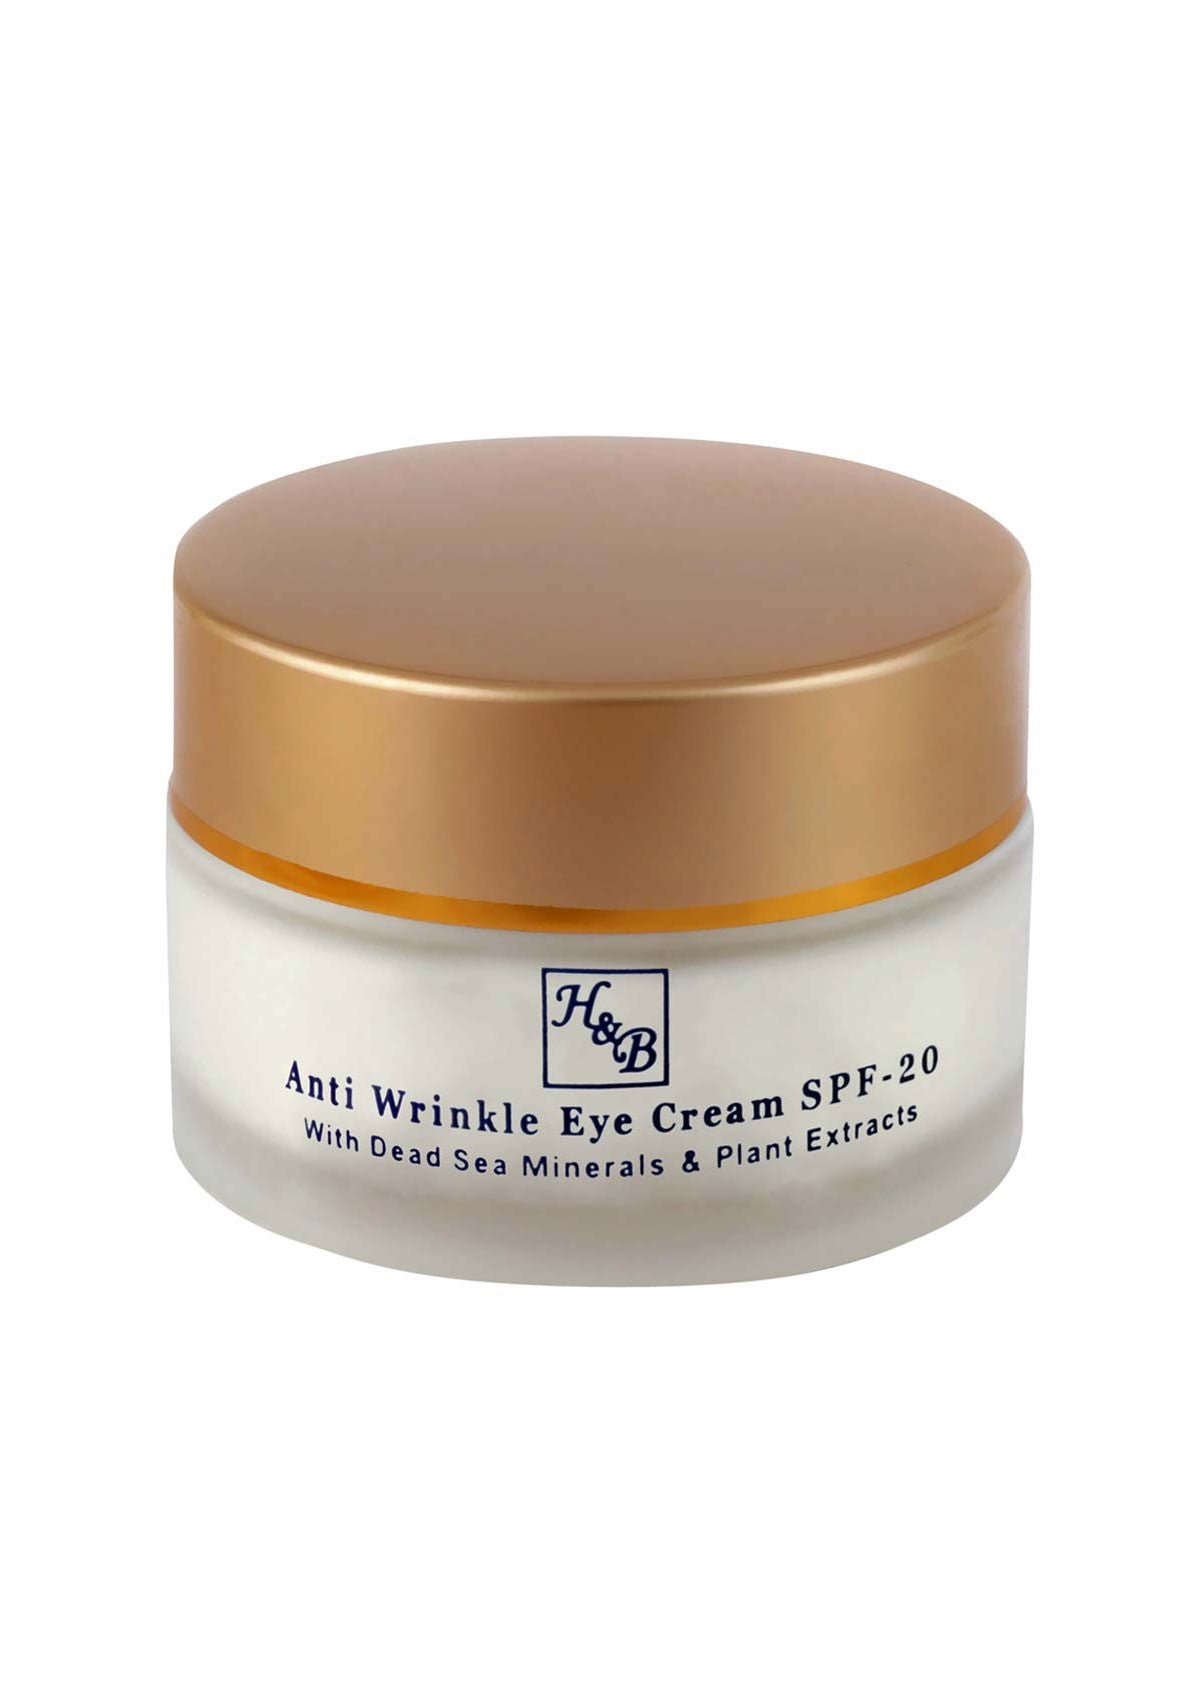 Health & Beauty - Anti Wrinkle Eye Cream SPF-20 - DeadSeaShop.co.uk